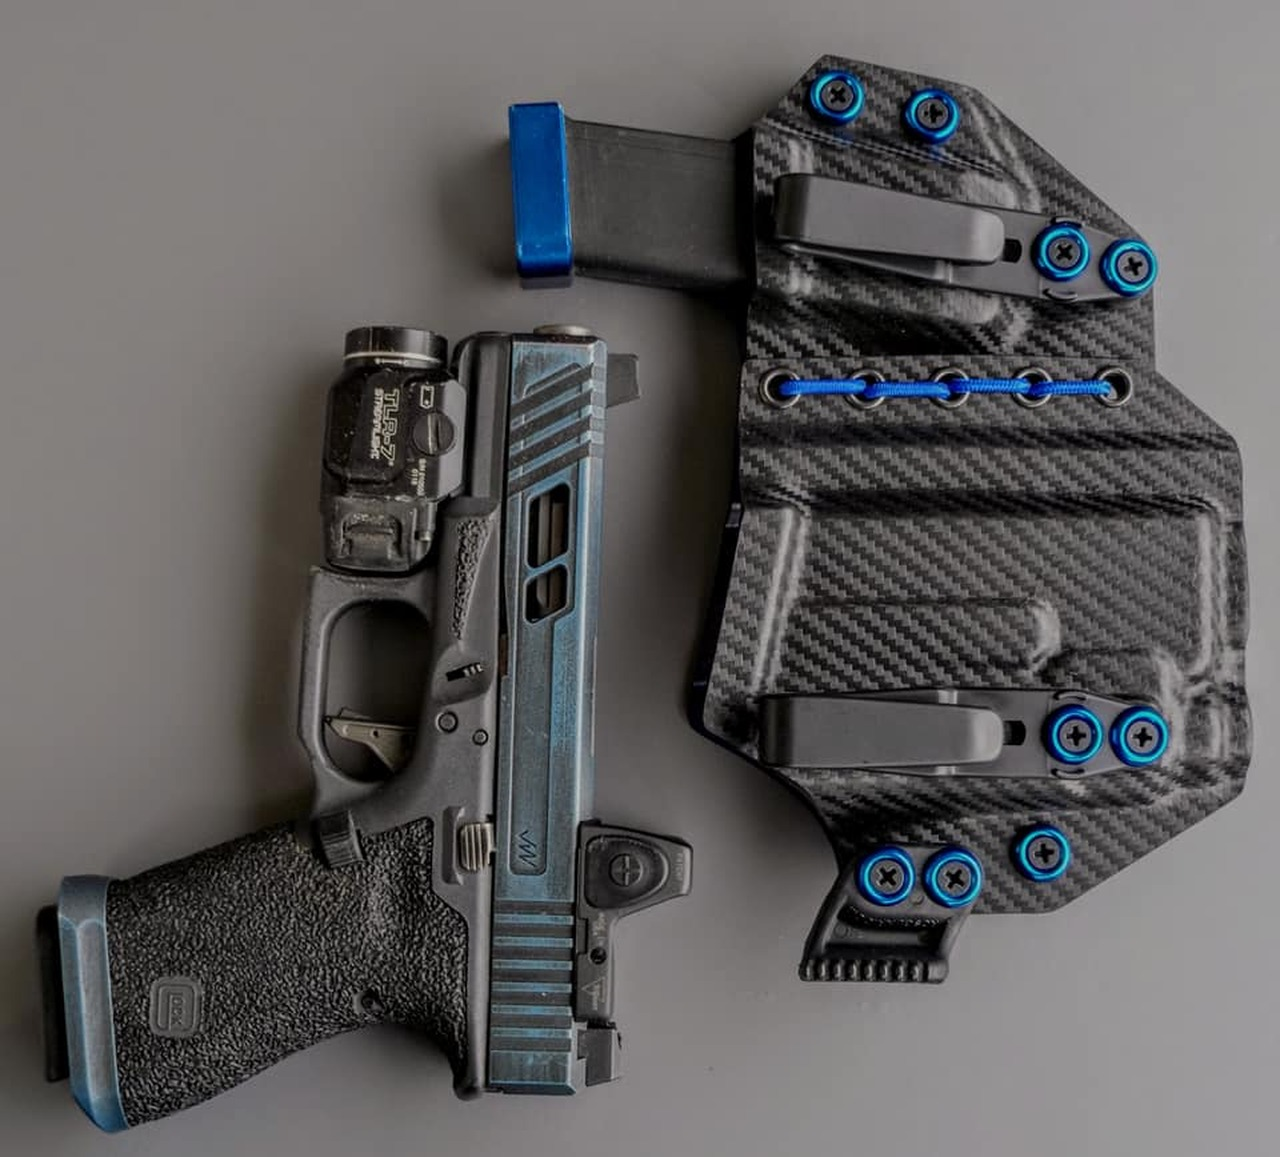 Glock 19 Streamlight TLR7 Appendix Carry Rig with Shockcord